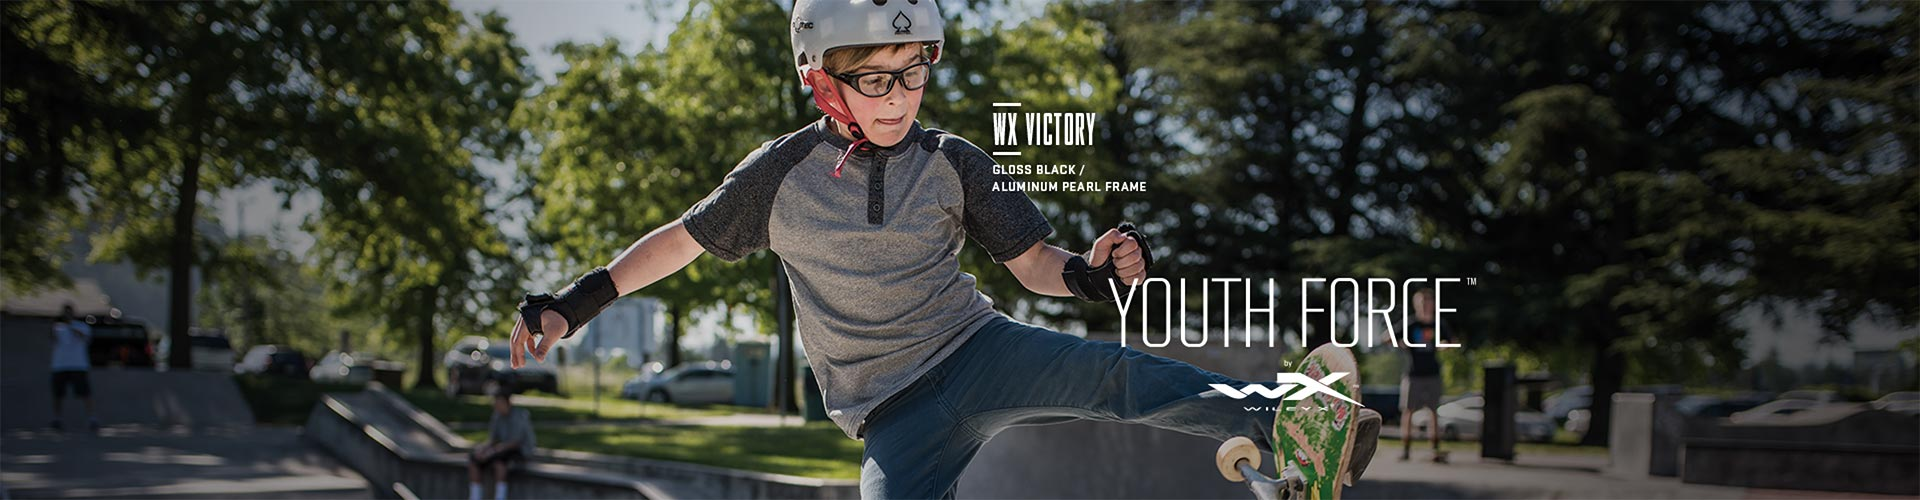 Shop Wiley X Youth Force Eyeglasses - model WX Victory featured